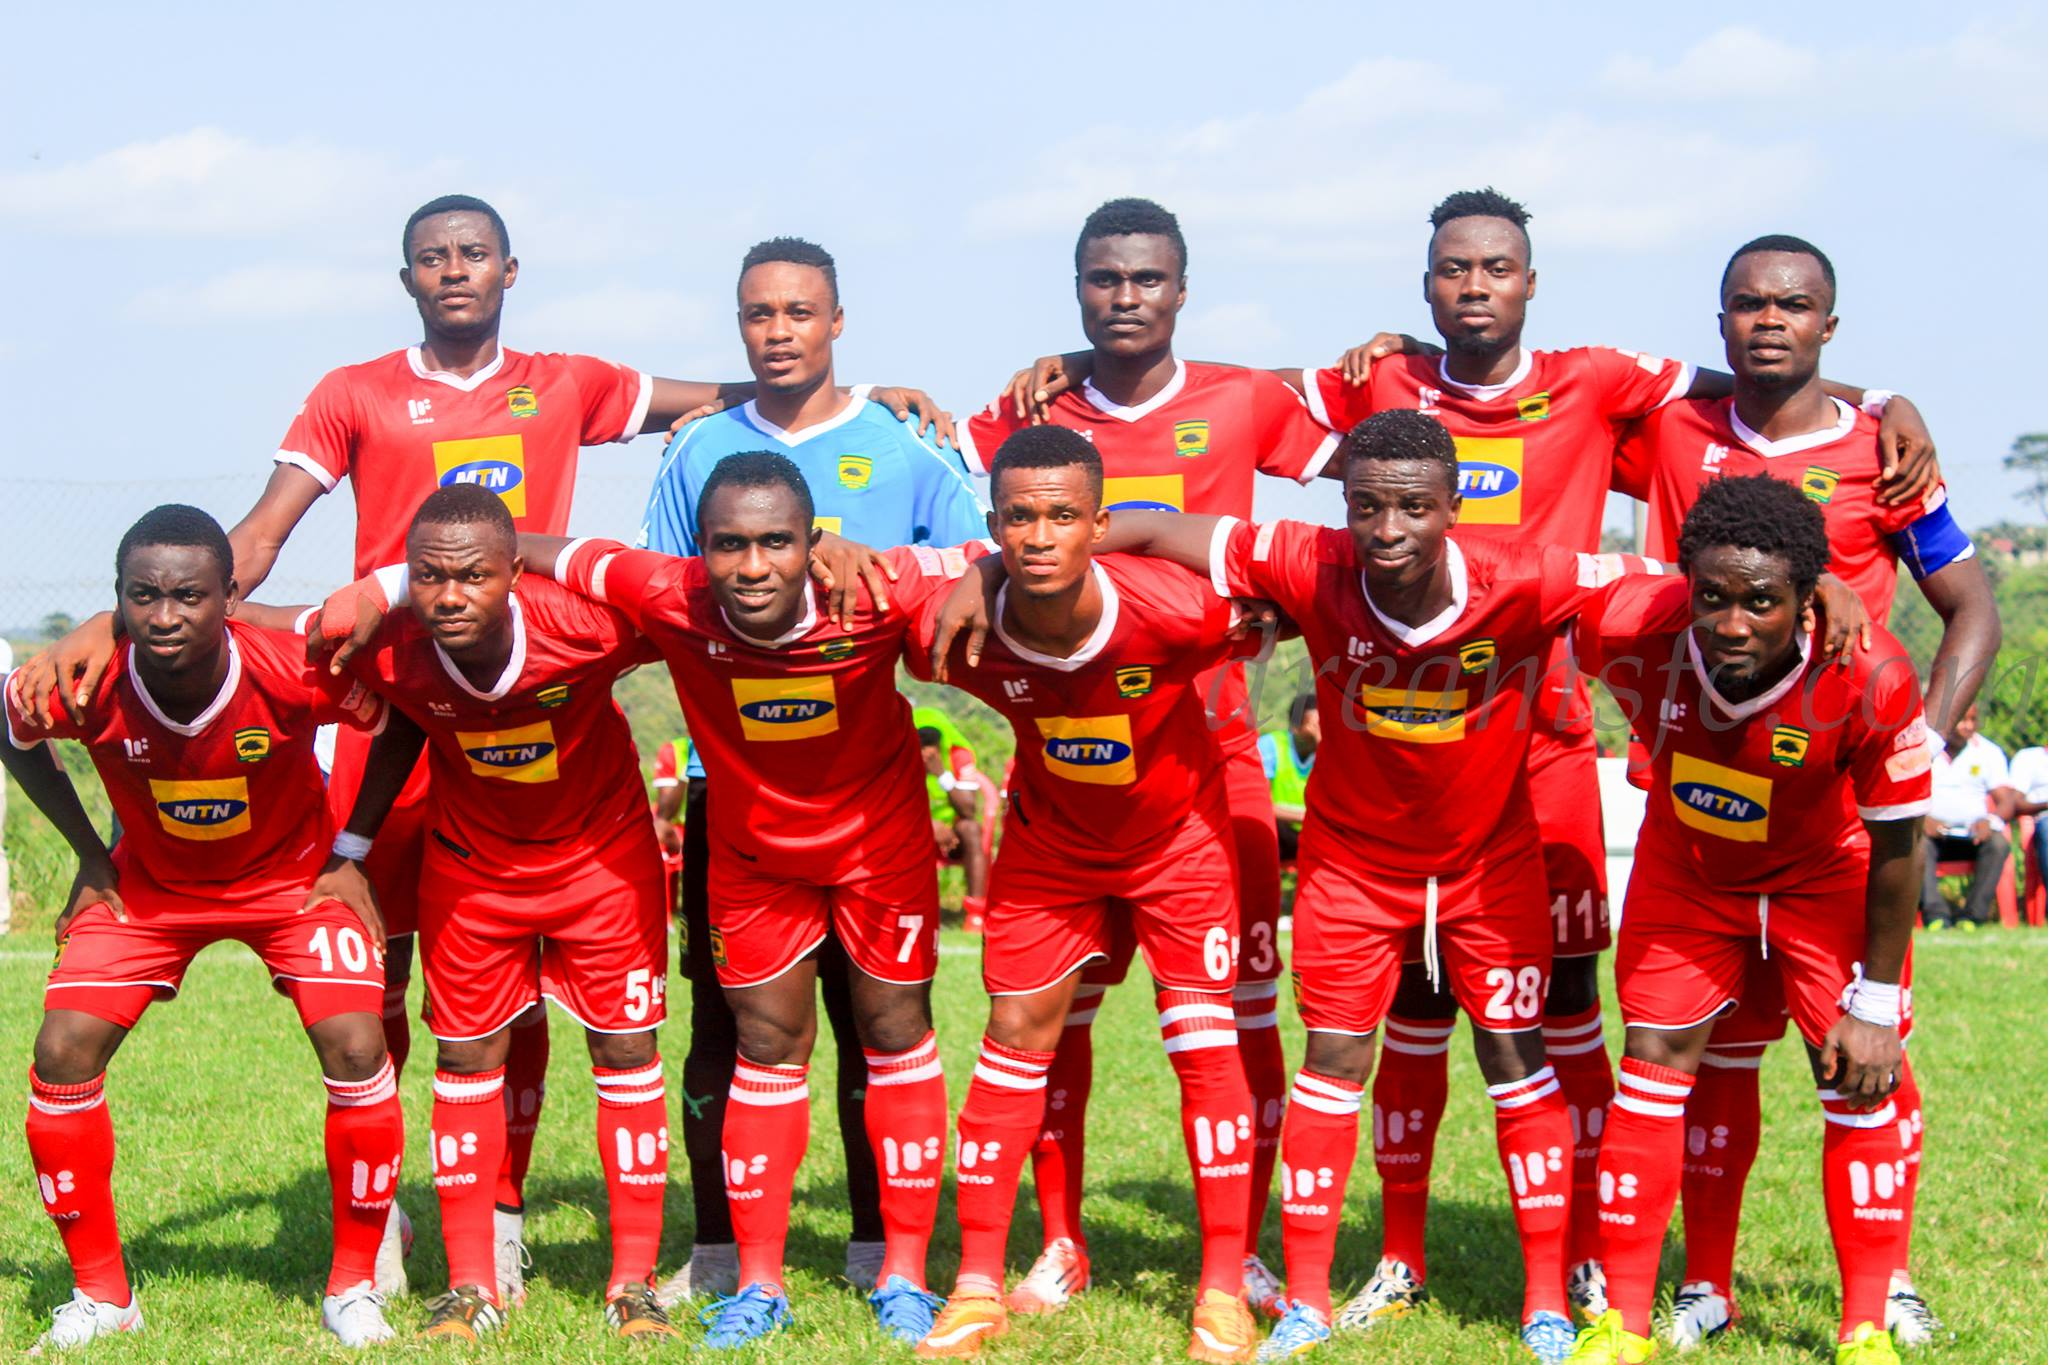 Ghana Premier League Preview: Asante Kotoko vs Berekum Chelsea- Red-eyed Porcupines in for revenge